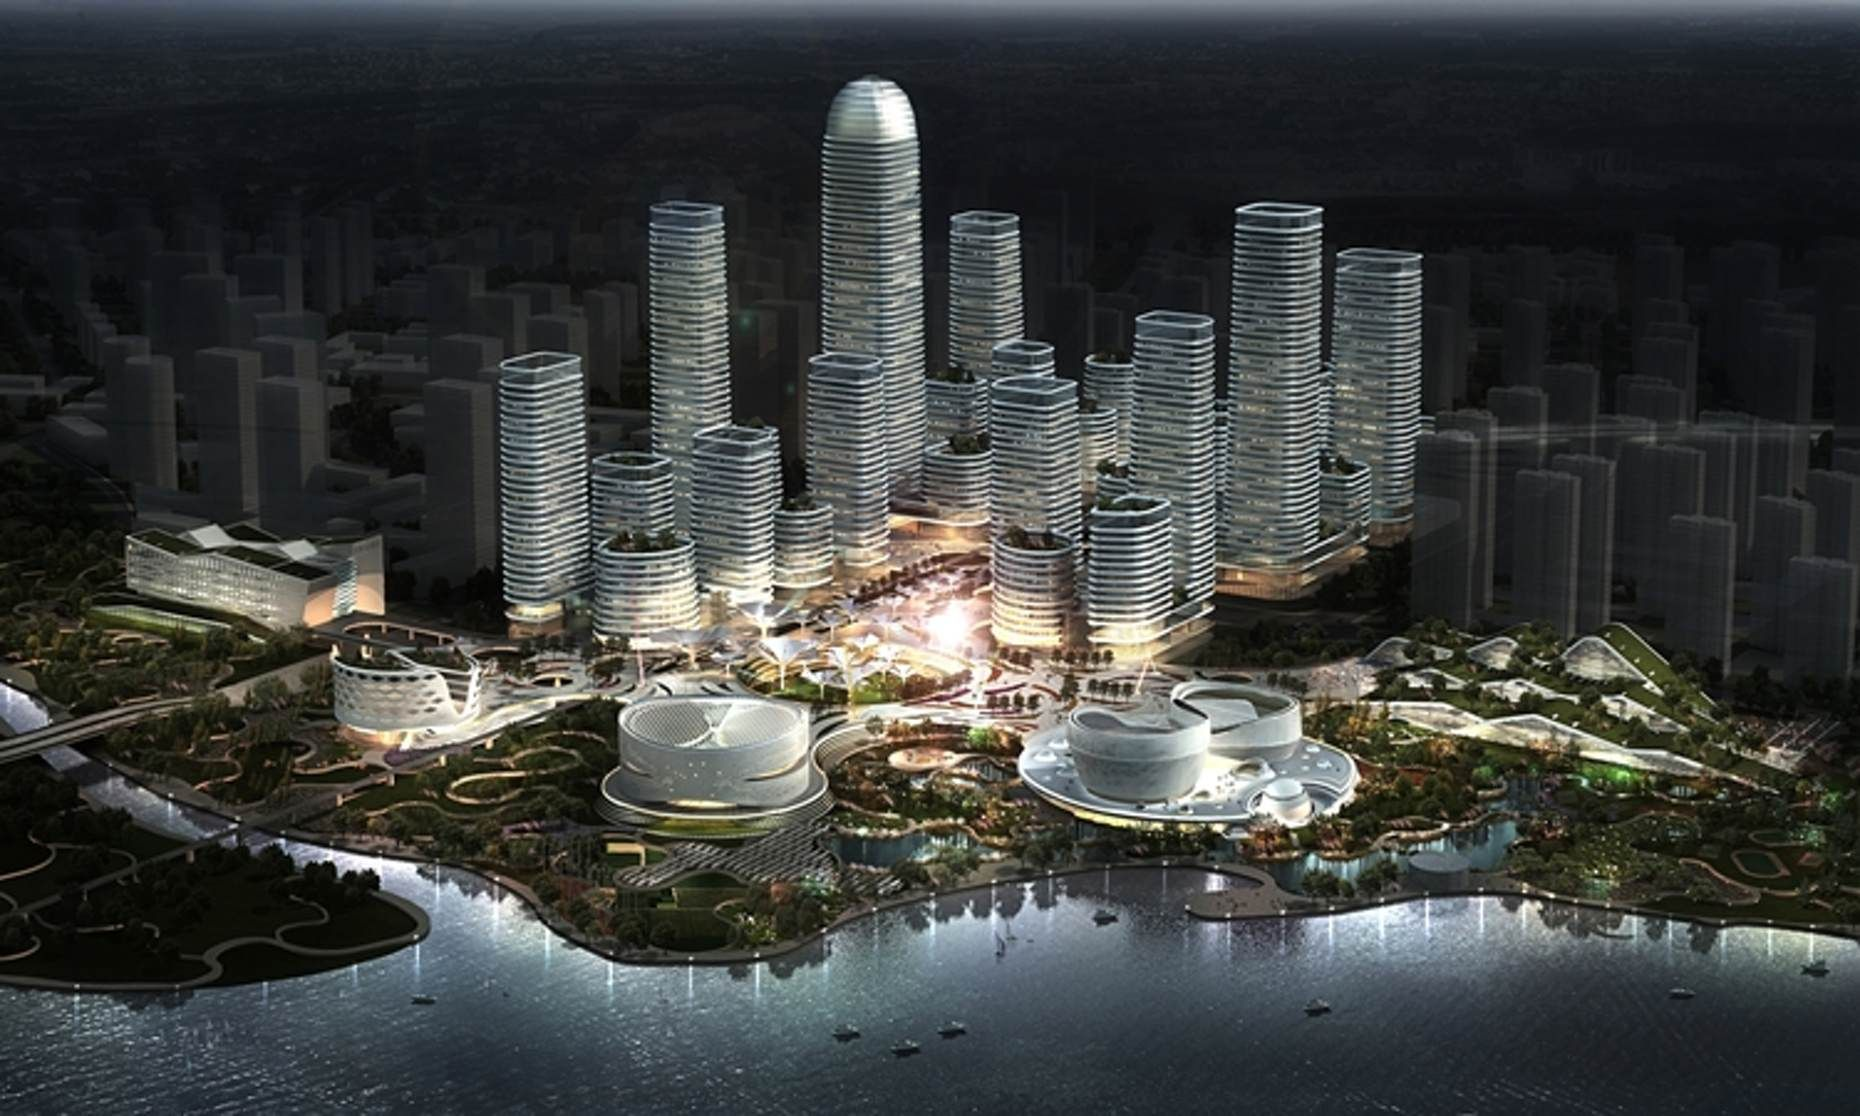 Binhai Eco City aims to be a case study for green urban planning